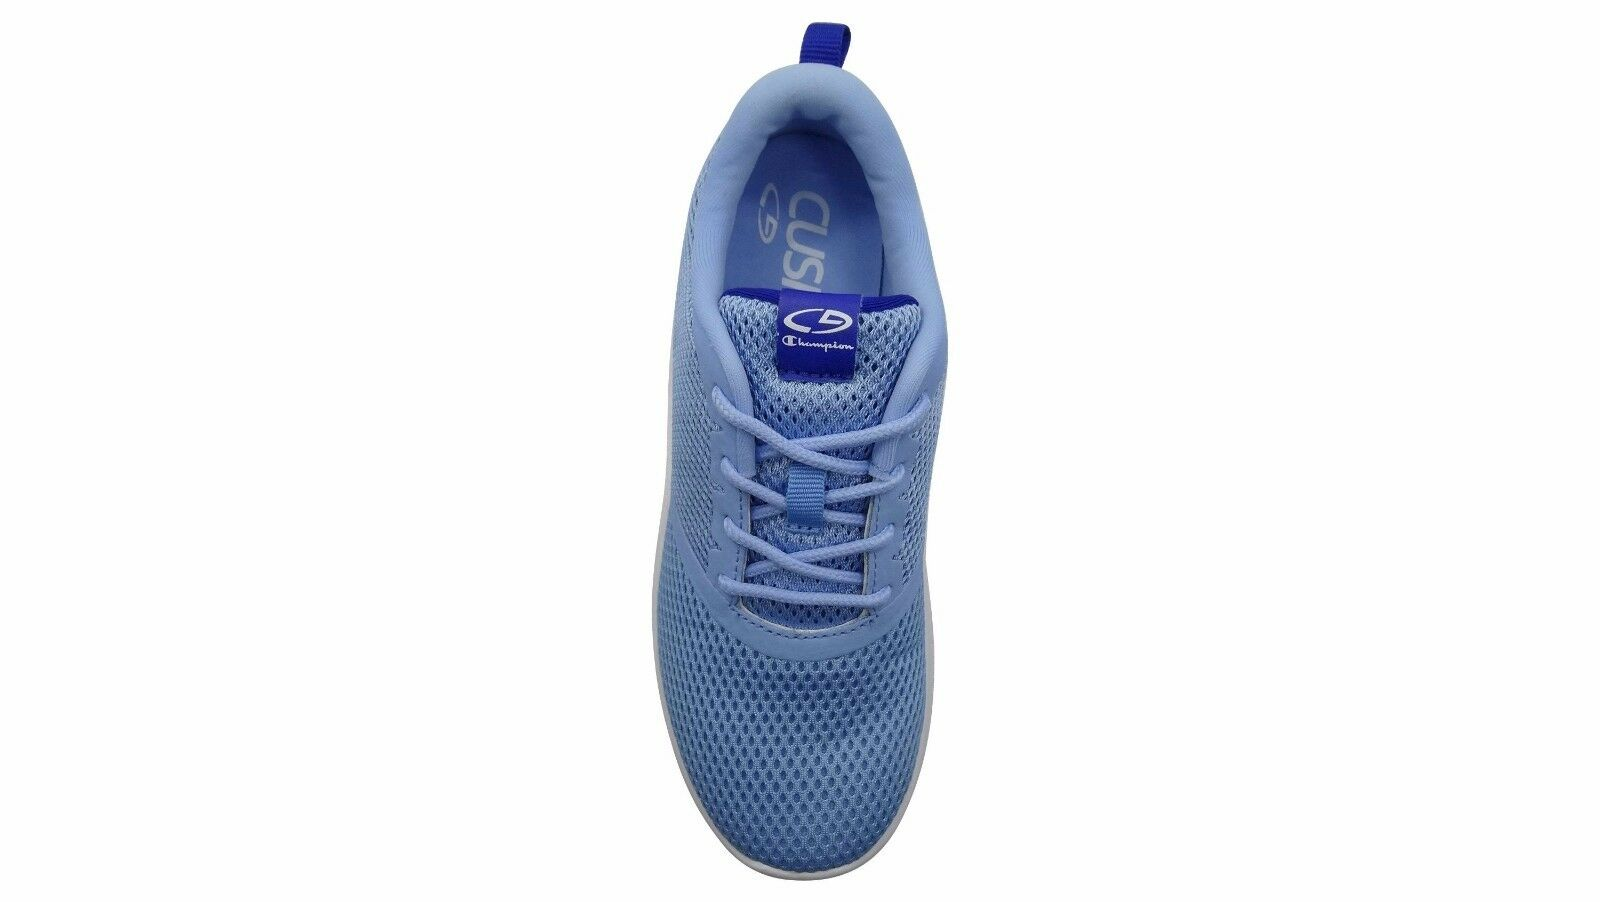 51581598d6e66e C9 Champion Women s Limit 2.0 Performance Athletic Shoes Blue - Size ...